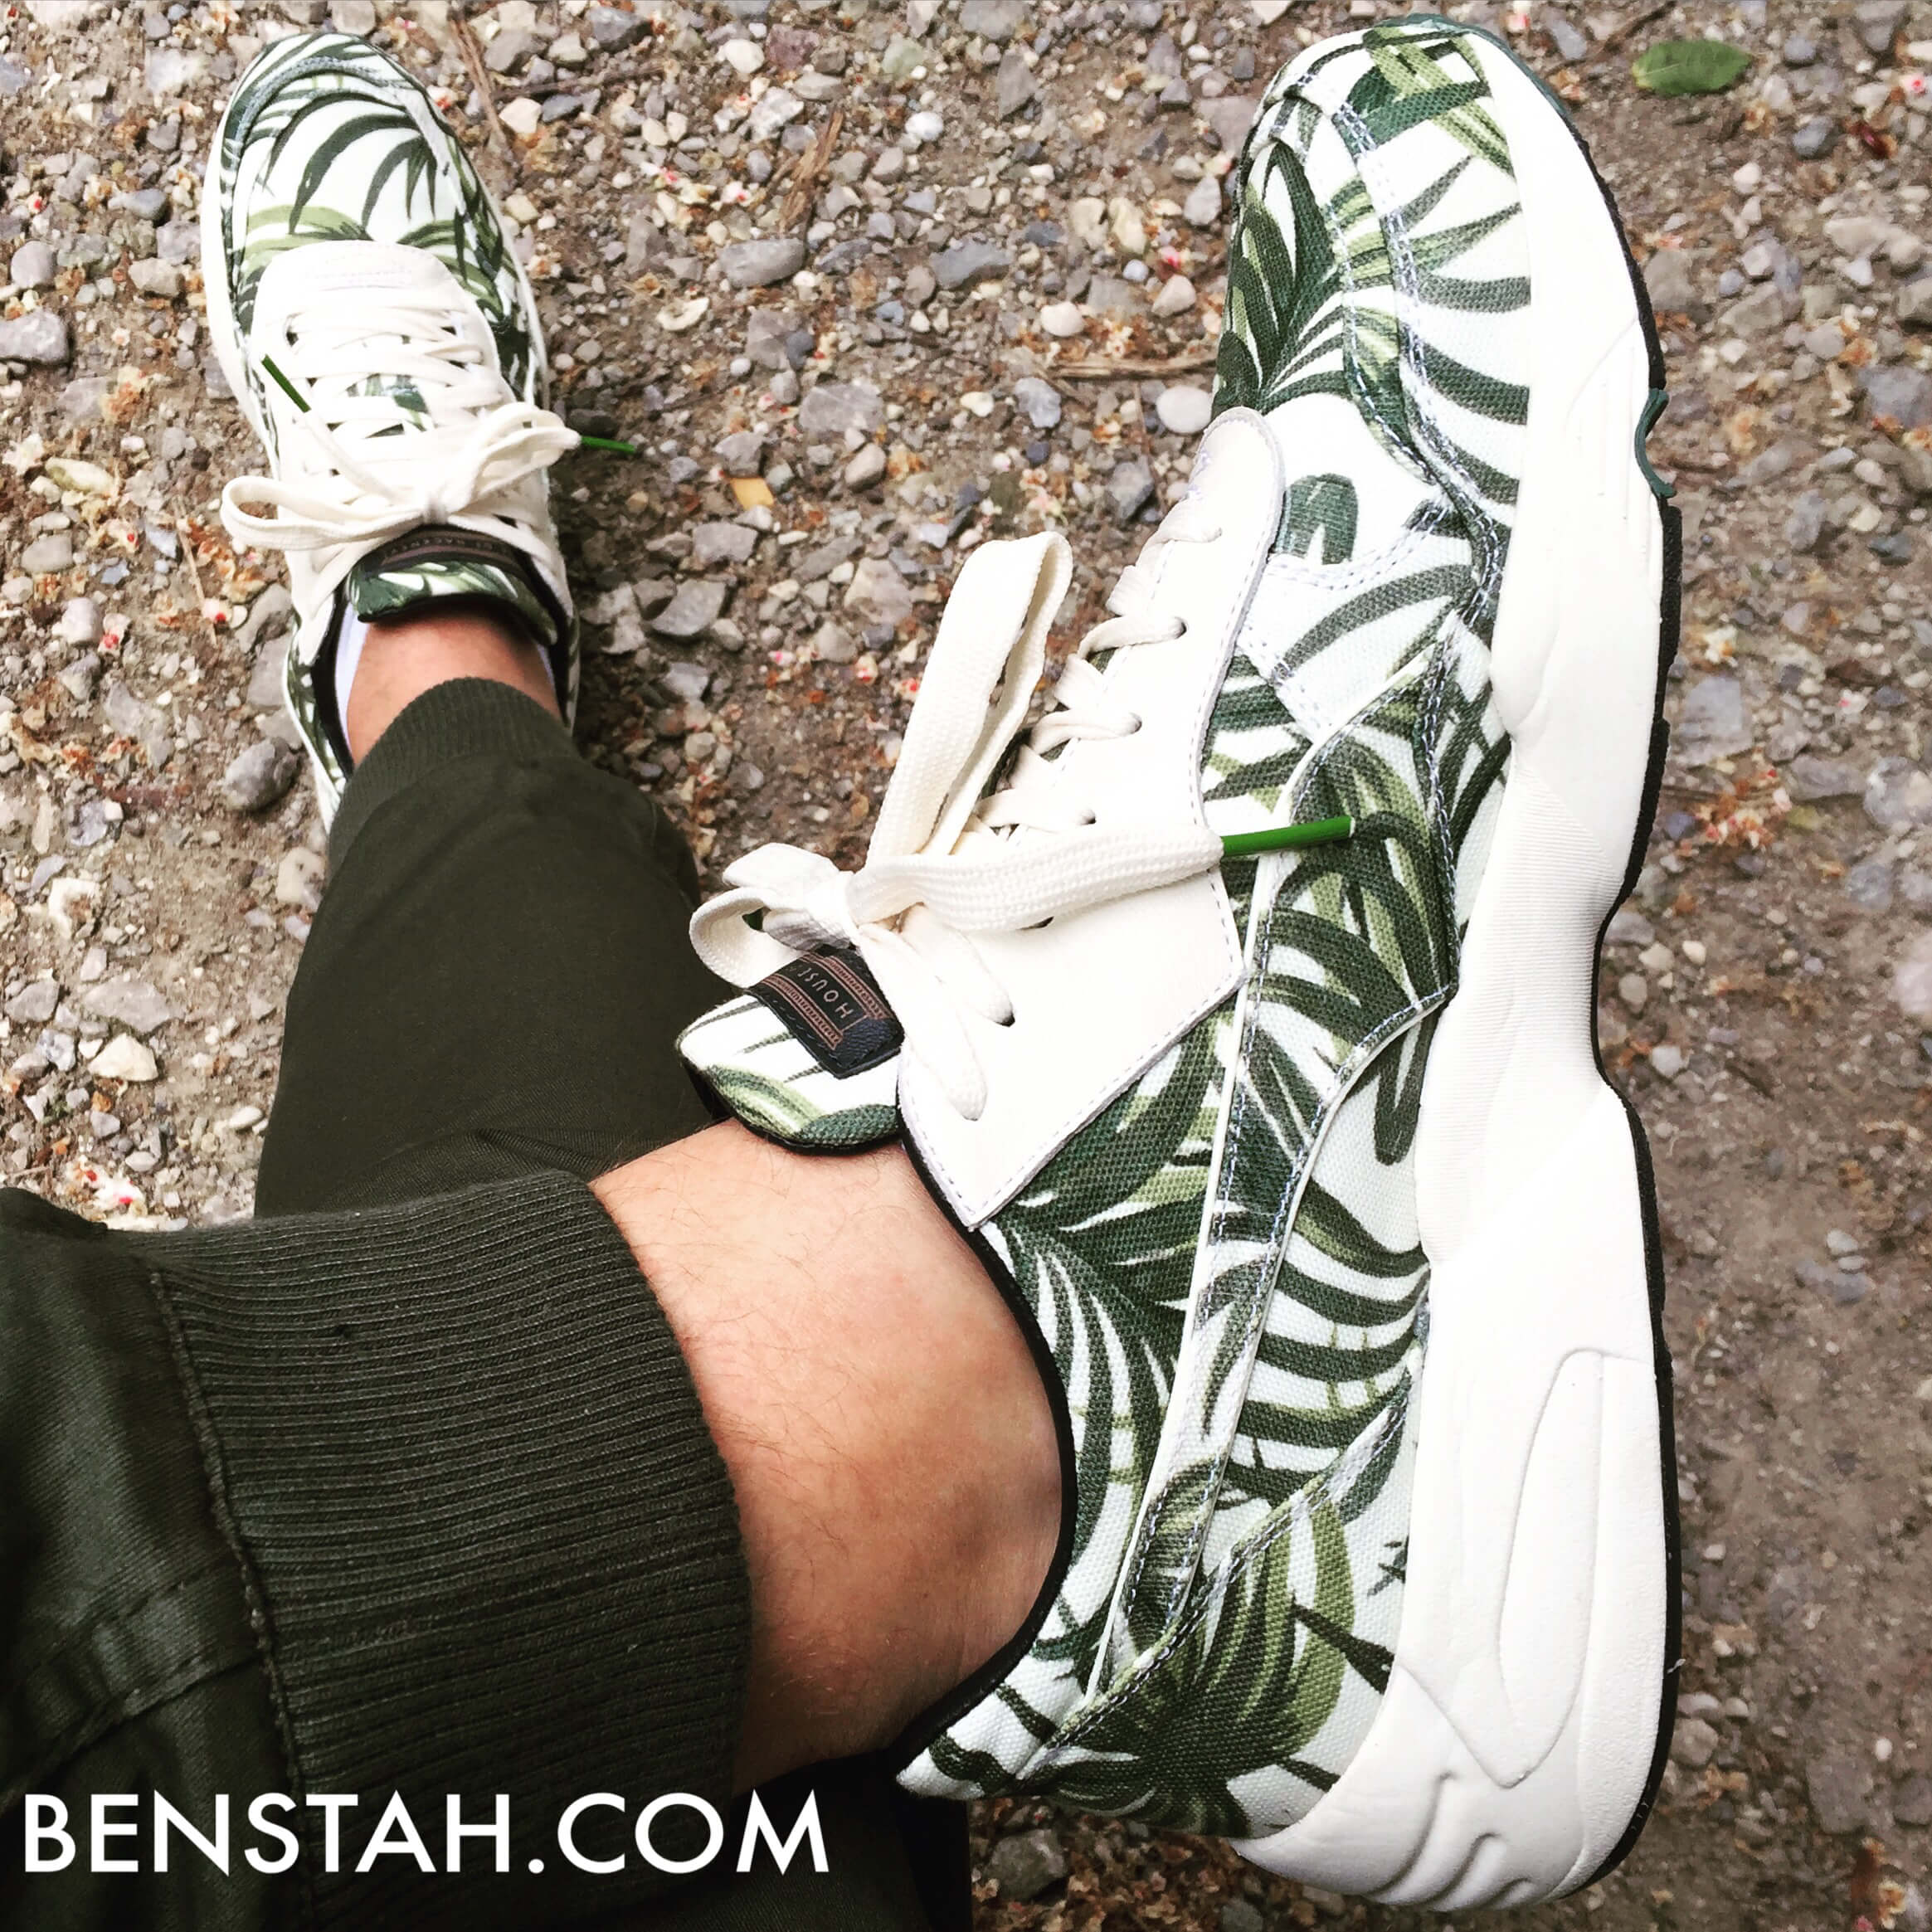 Puma-House-of-Hackney-x-R698-Palm-Top-View-Benstah-Onfeet